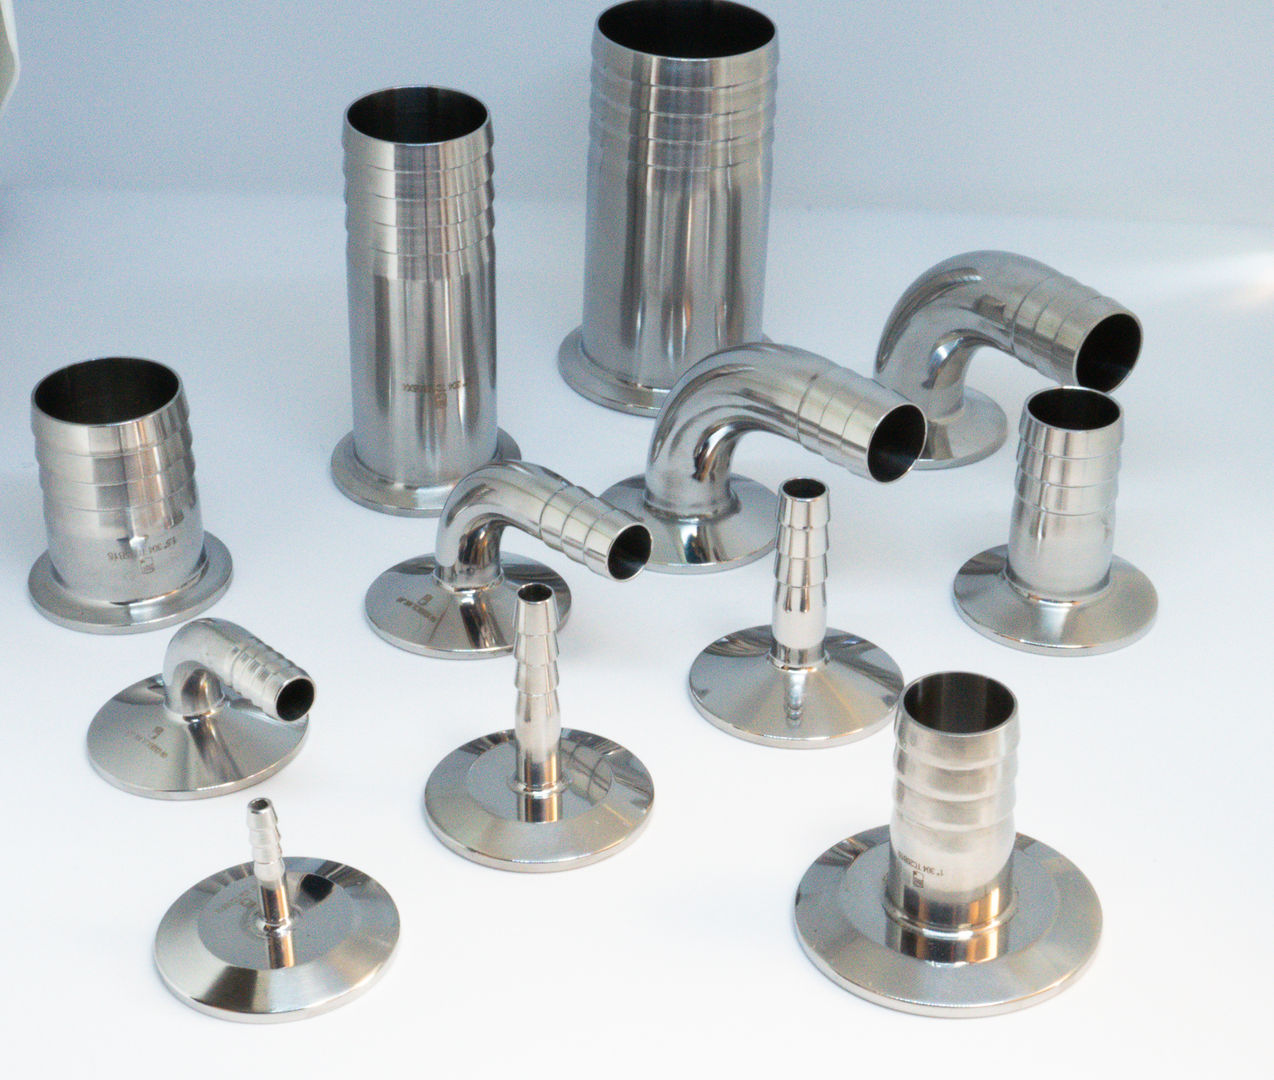 Tri-clamp to hose barb fittings